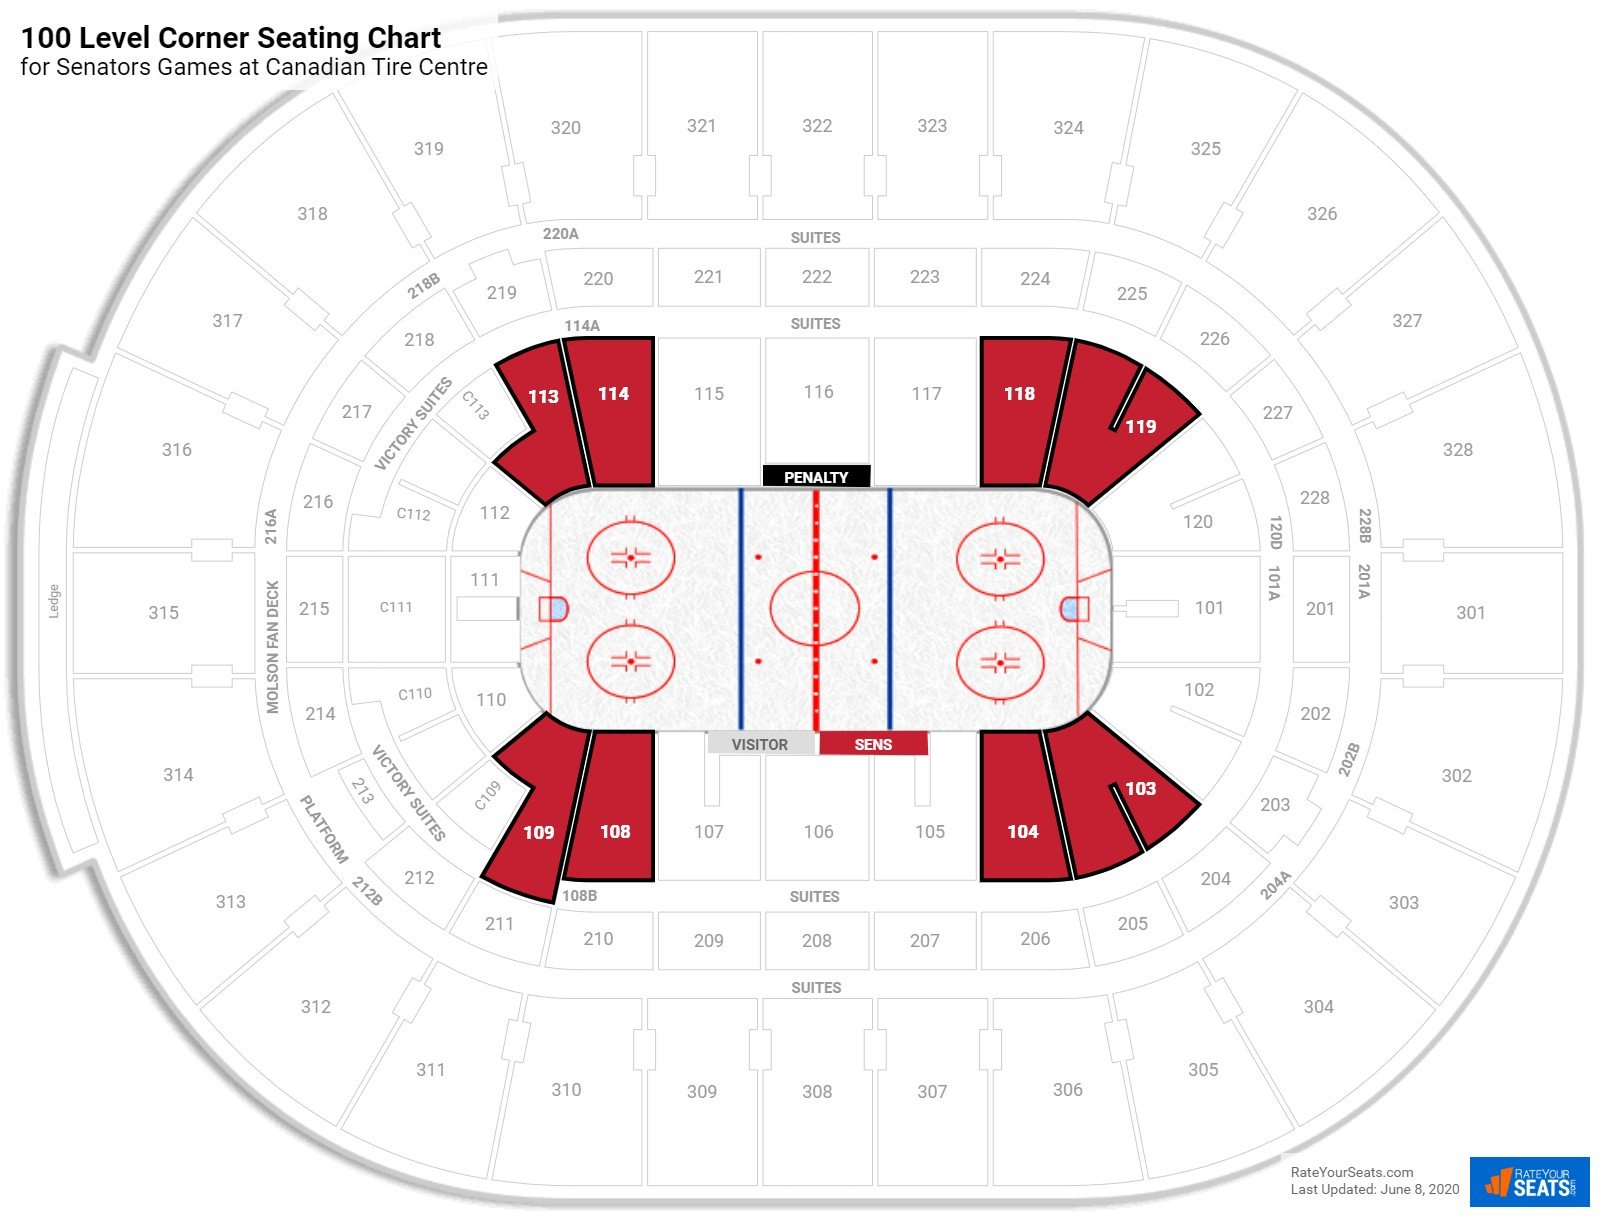 Canadian Tire Centre 100 Level Corner seating chart